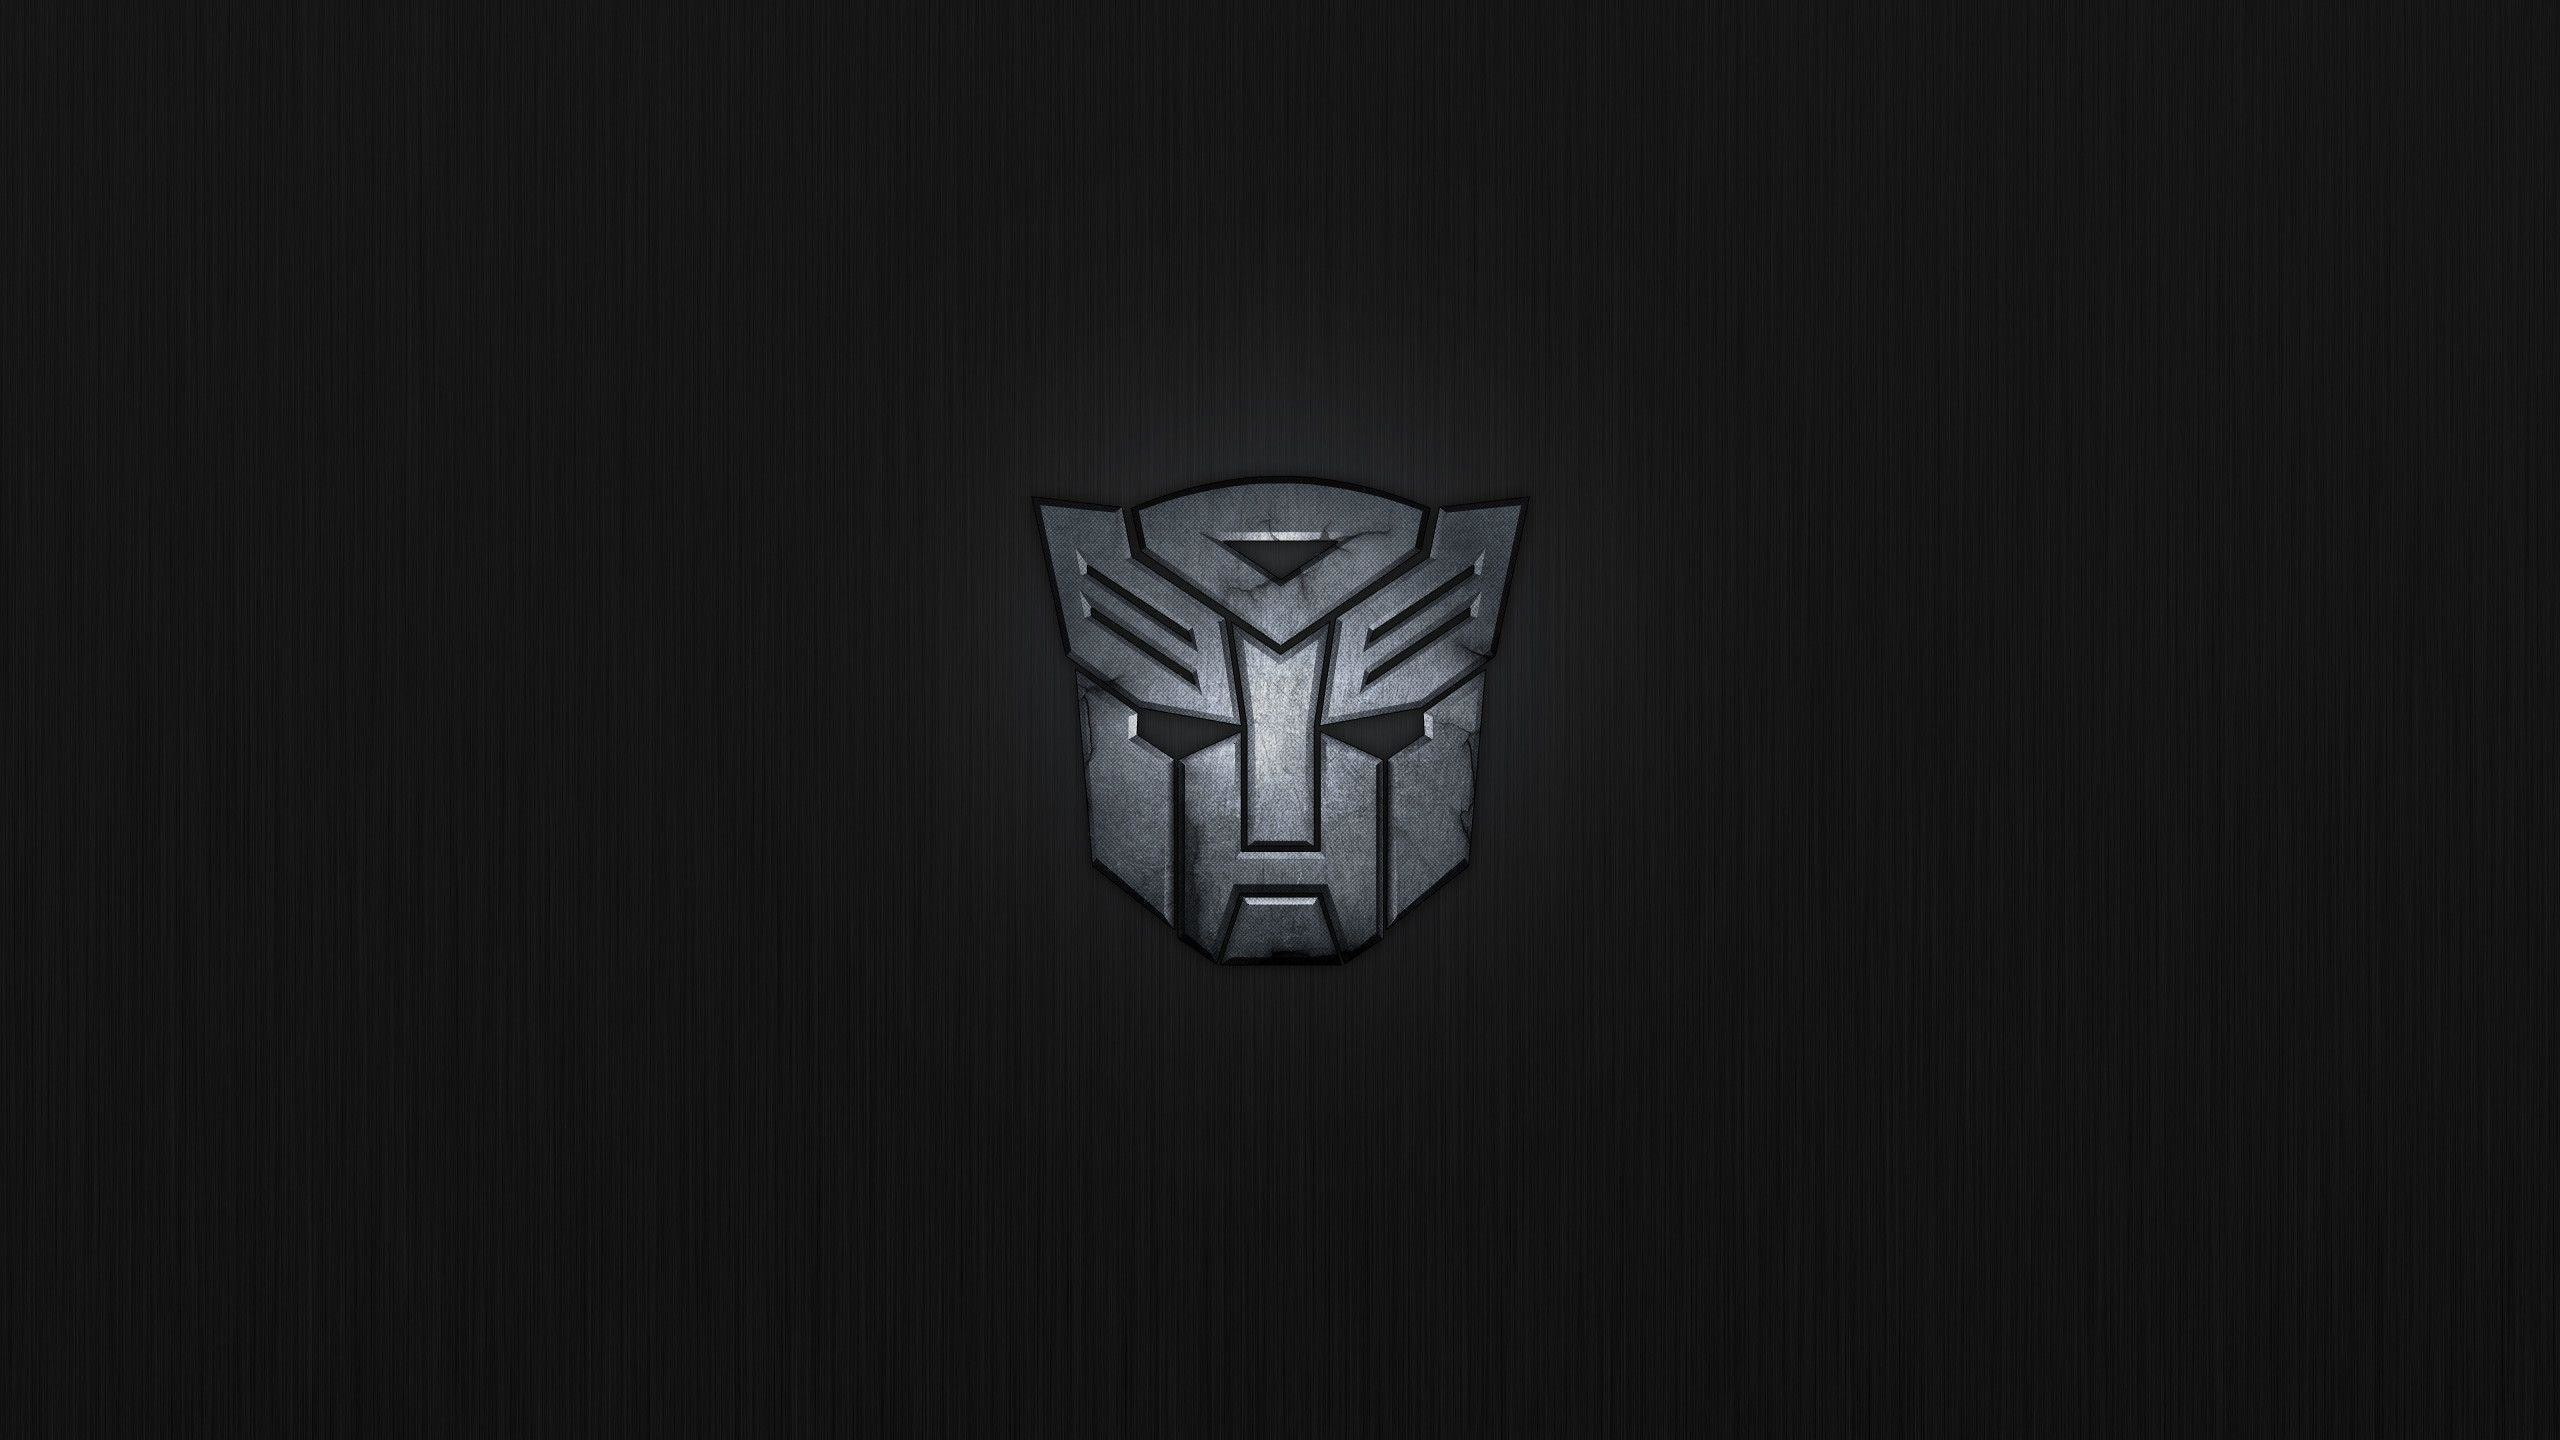 Res: 2560x1440, Download Free Transformers Autobot And Decepticon Logo 6 Wallpaper .